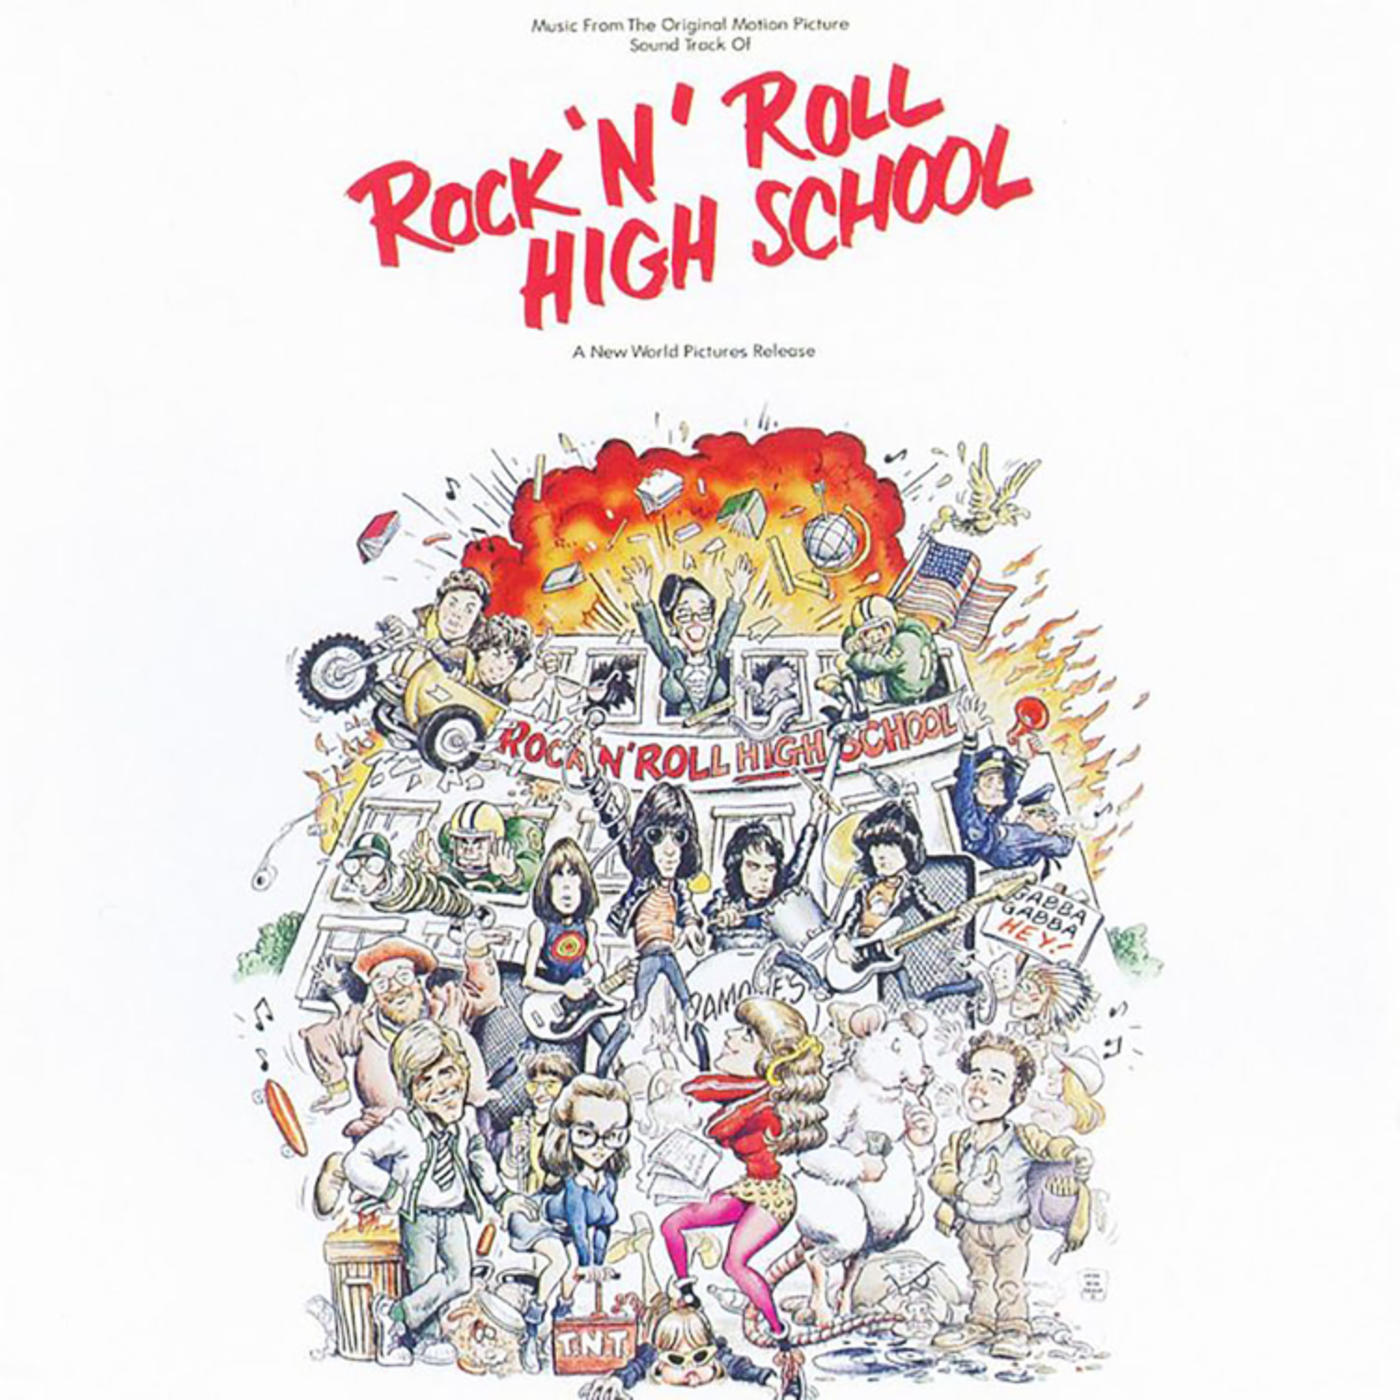 Lp plošča ROCK'N'ROLL HIGH SCHOOL - O.S.T.